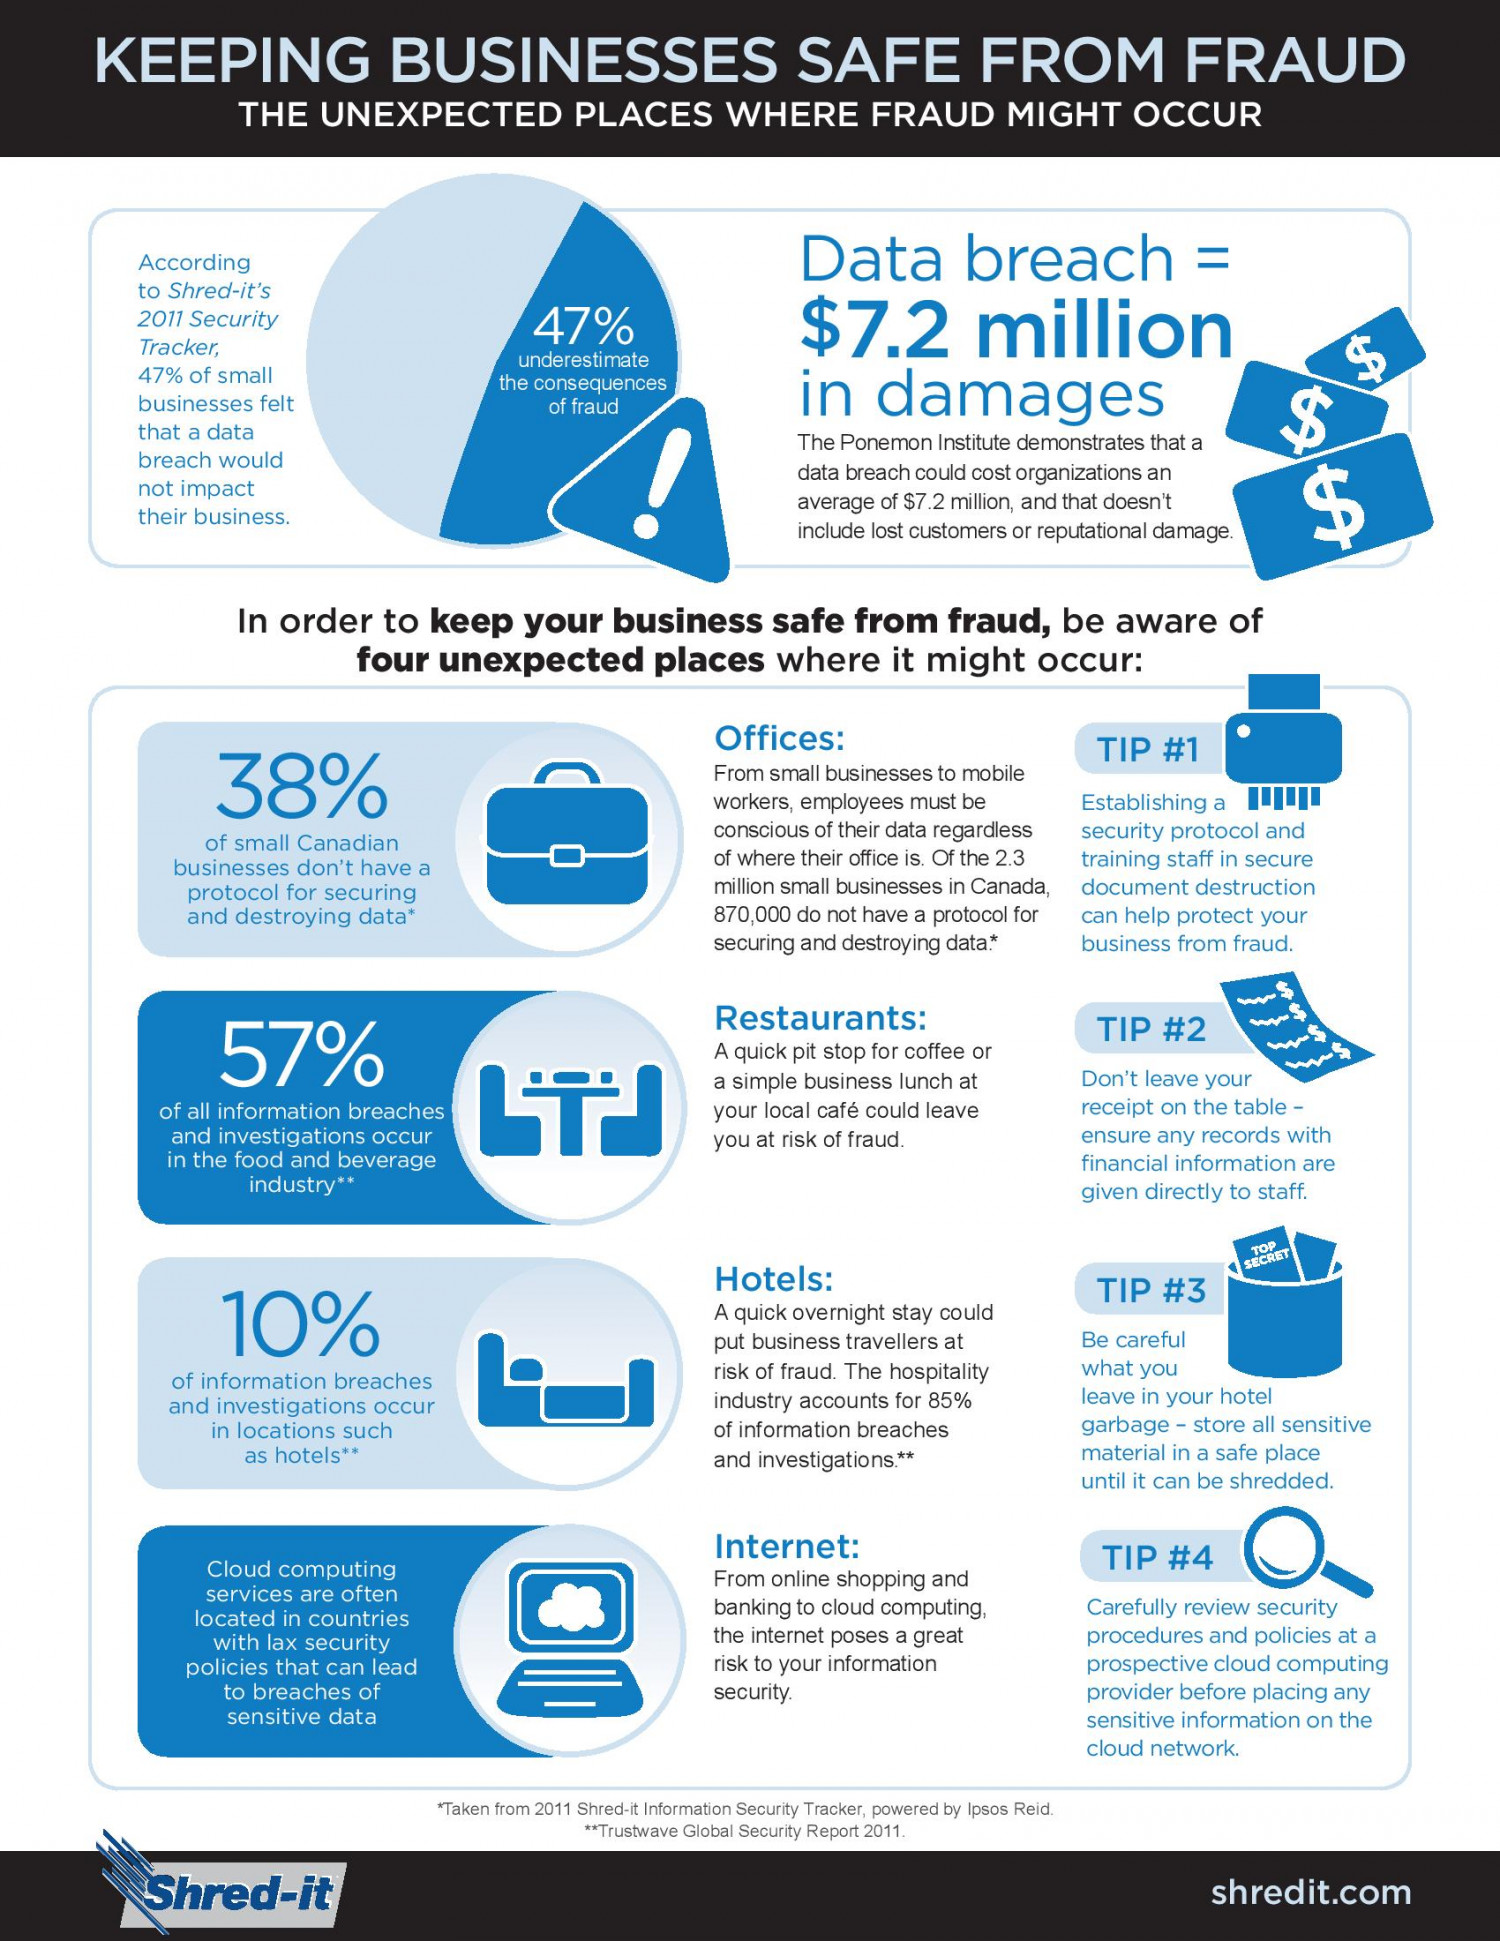 Keeping Businesses Safe from Fraud Infographic